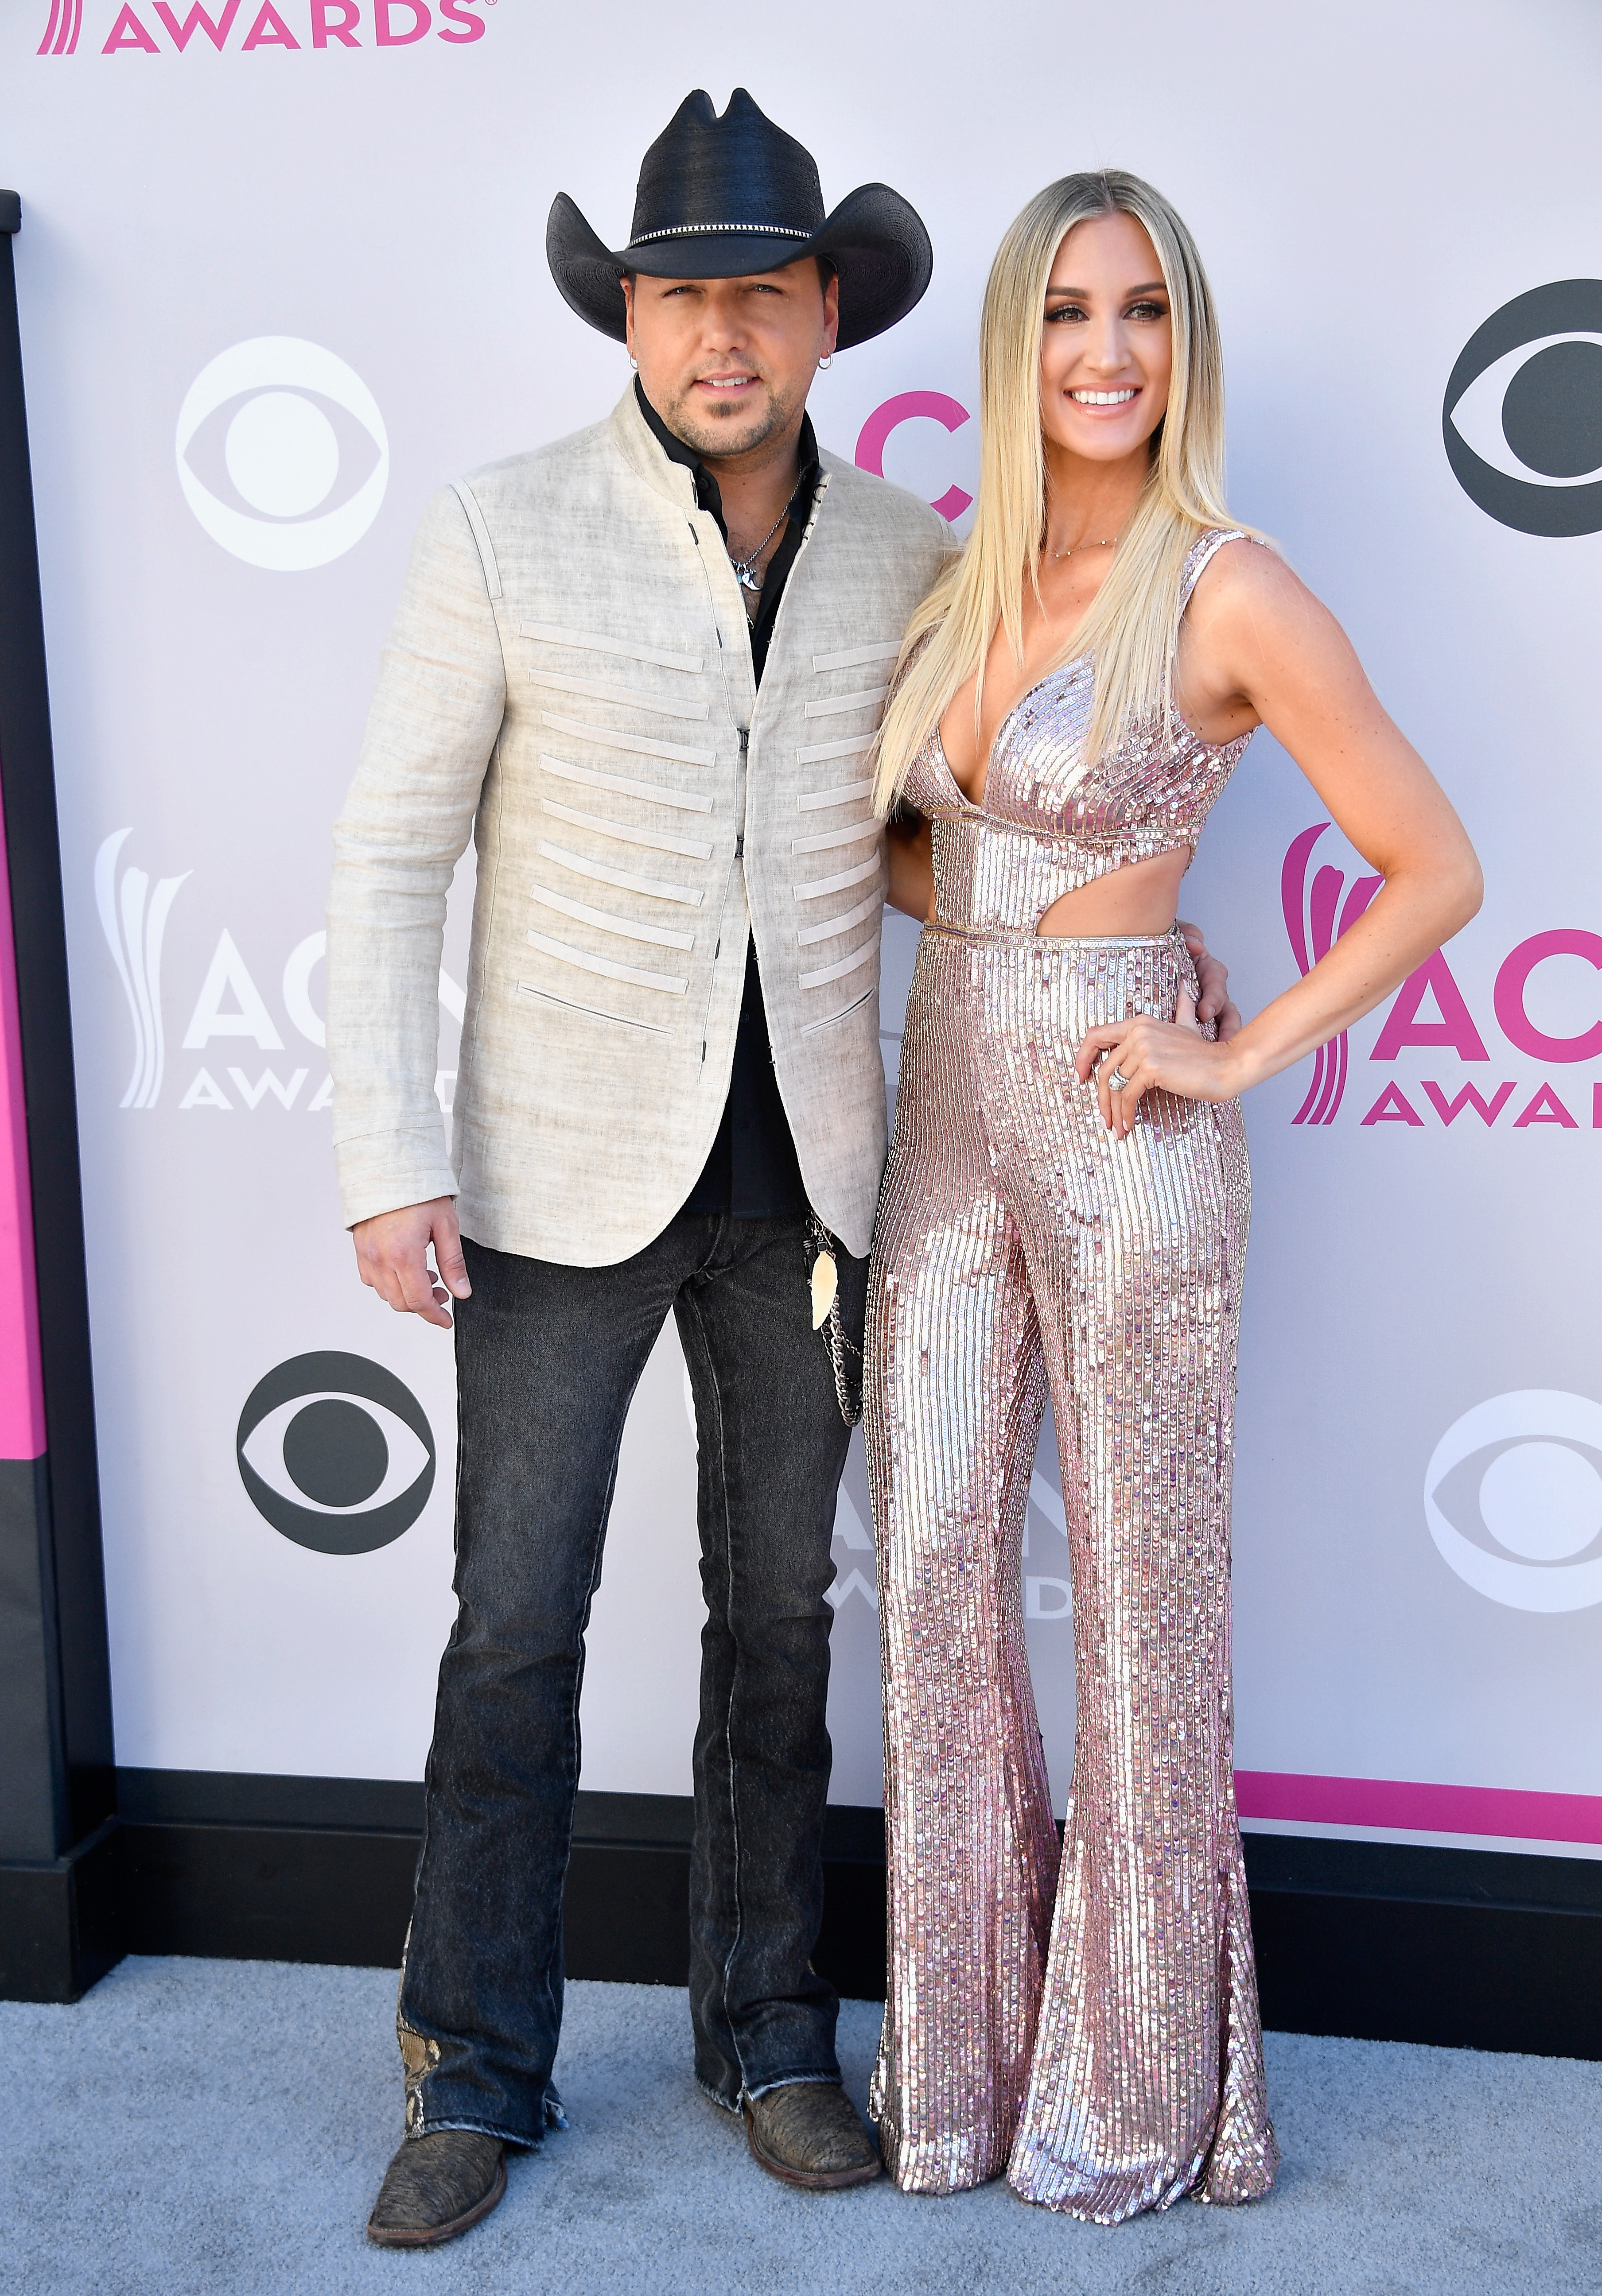 Jason Aldean and Brittany Kerr; Photo by Frazer Harrison/Getty Images